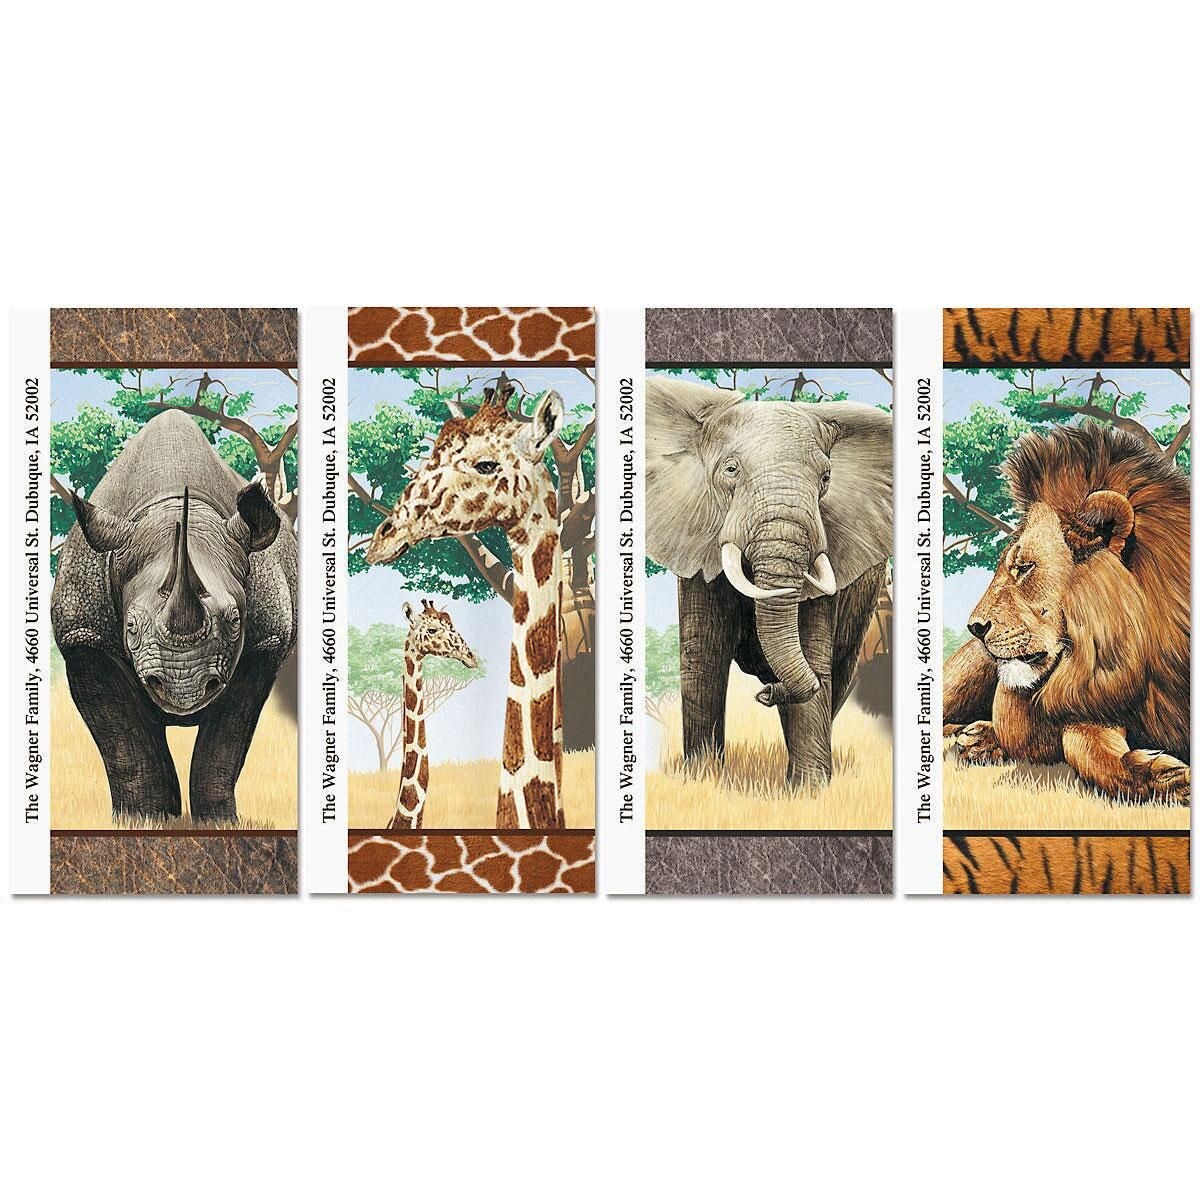 Trip to Africa Oversized Address Labels  (4 Designs)